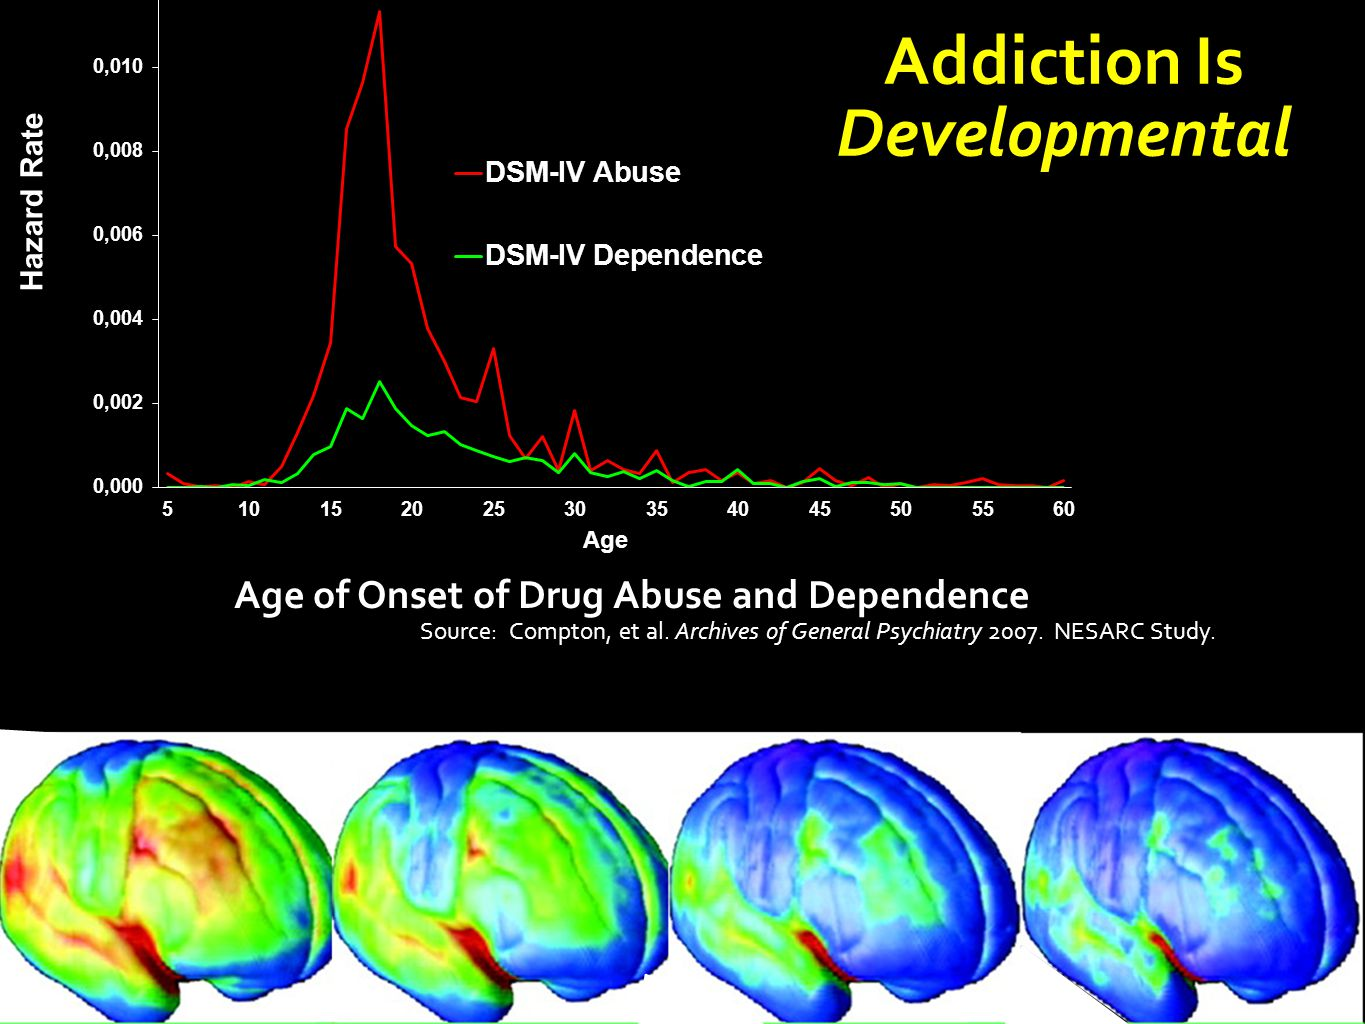 Addiction Is Developmental Age of Onset of Drug Abuse and Dependence